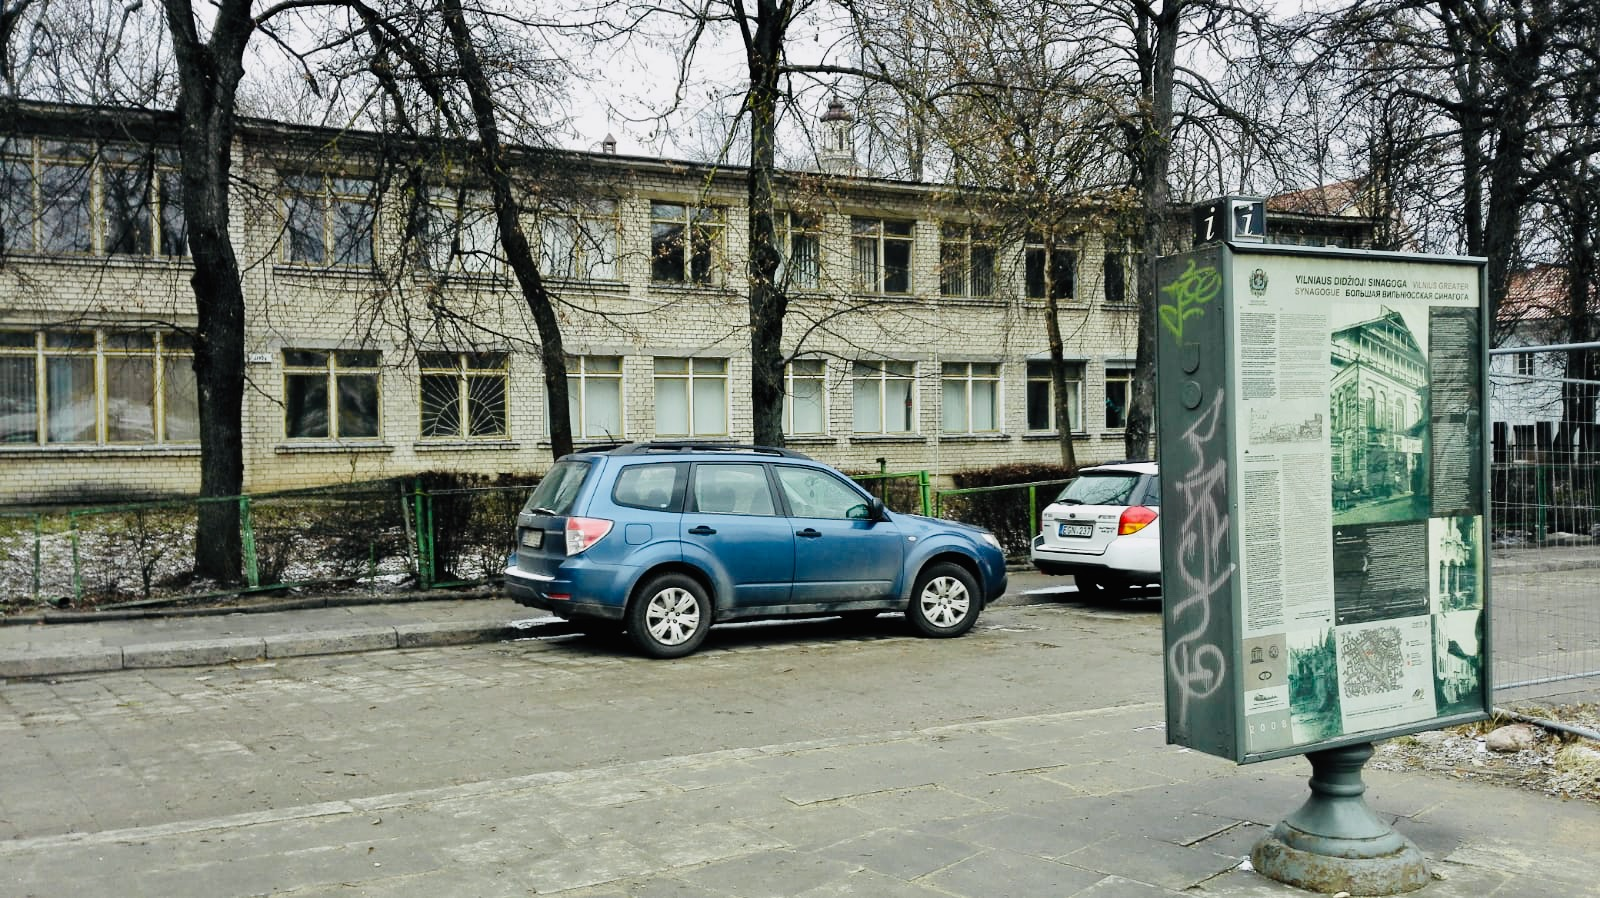 A Soviet primary school in the site of the Great Synagogue of Vilna